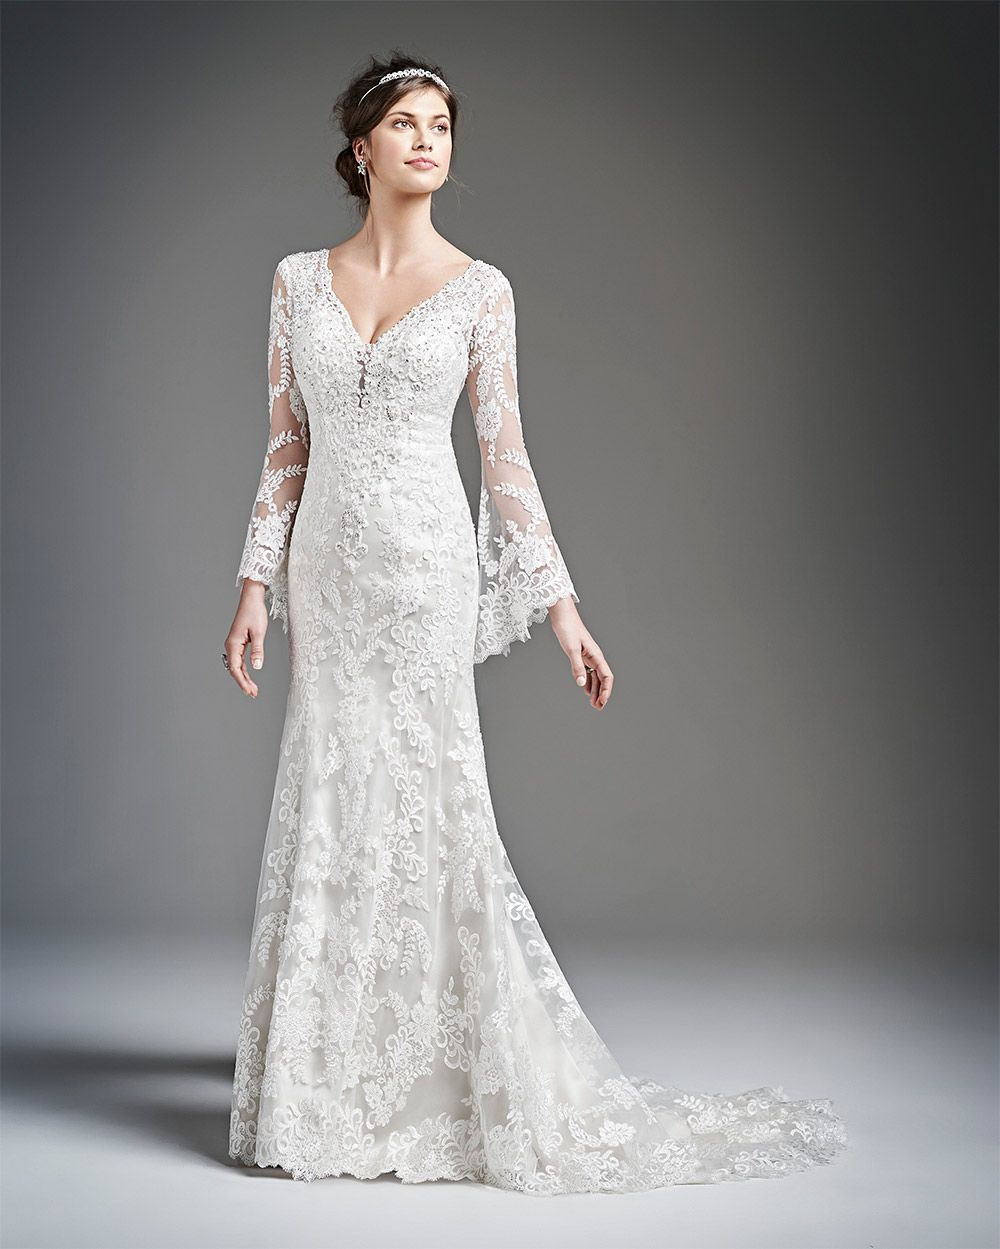 Wedding Dresses for Older Brides | Pinterest | Wedding dress ...